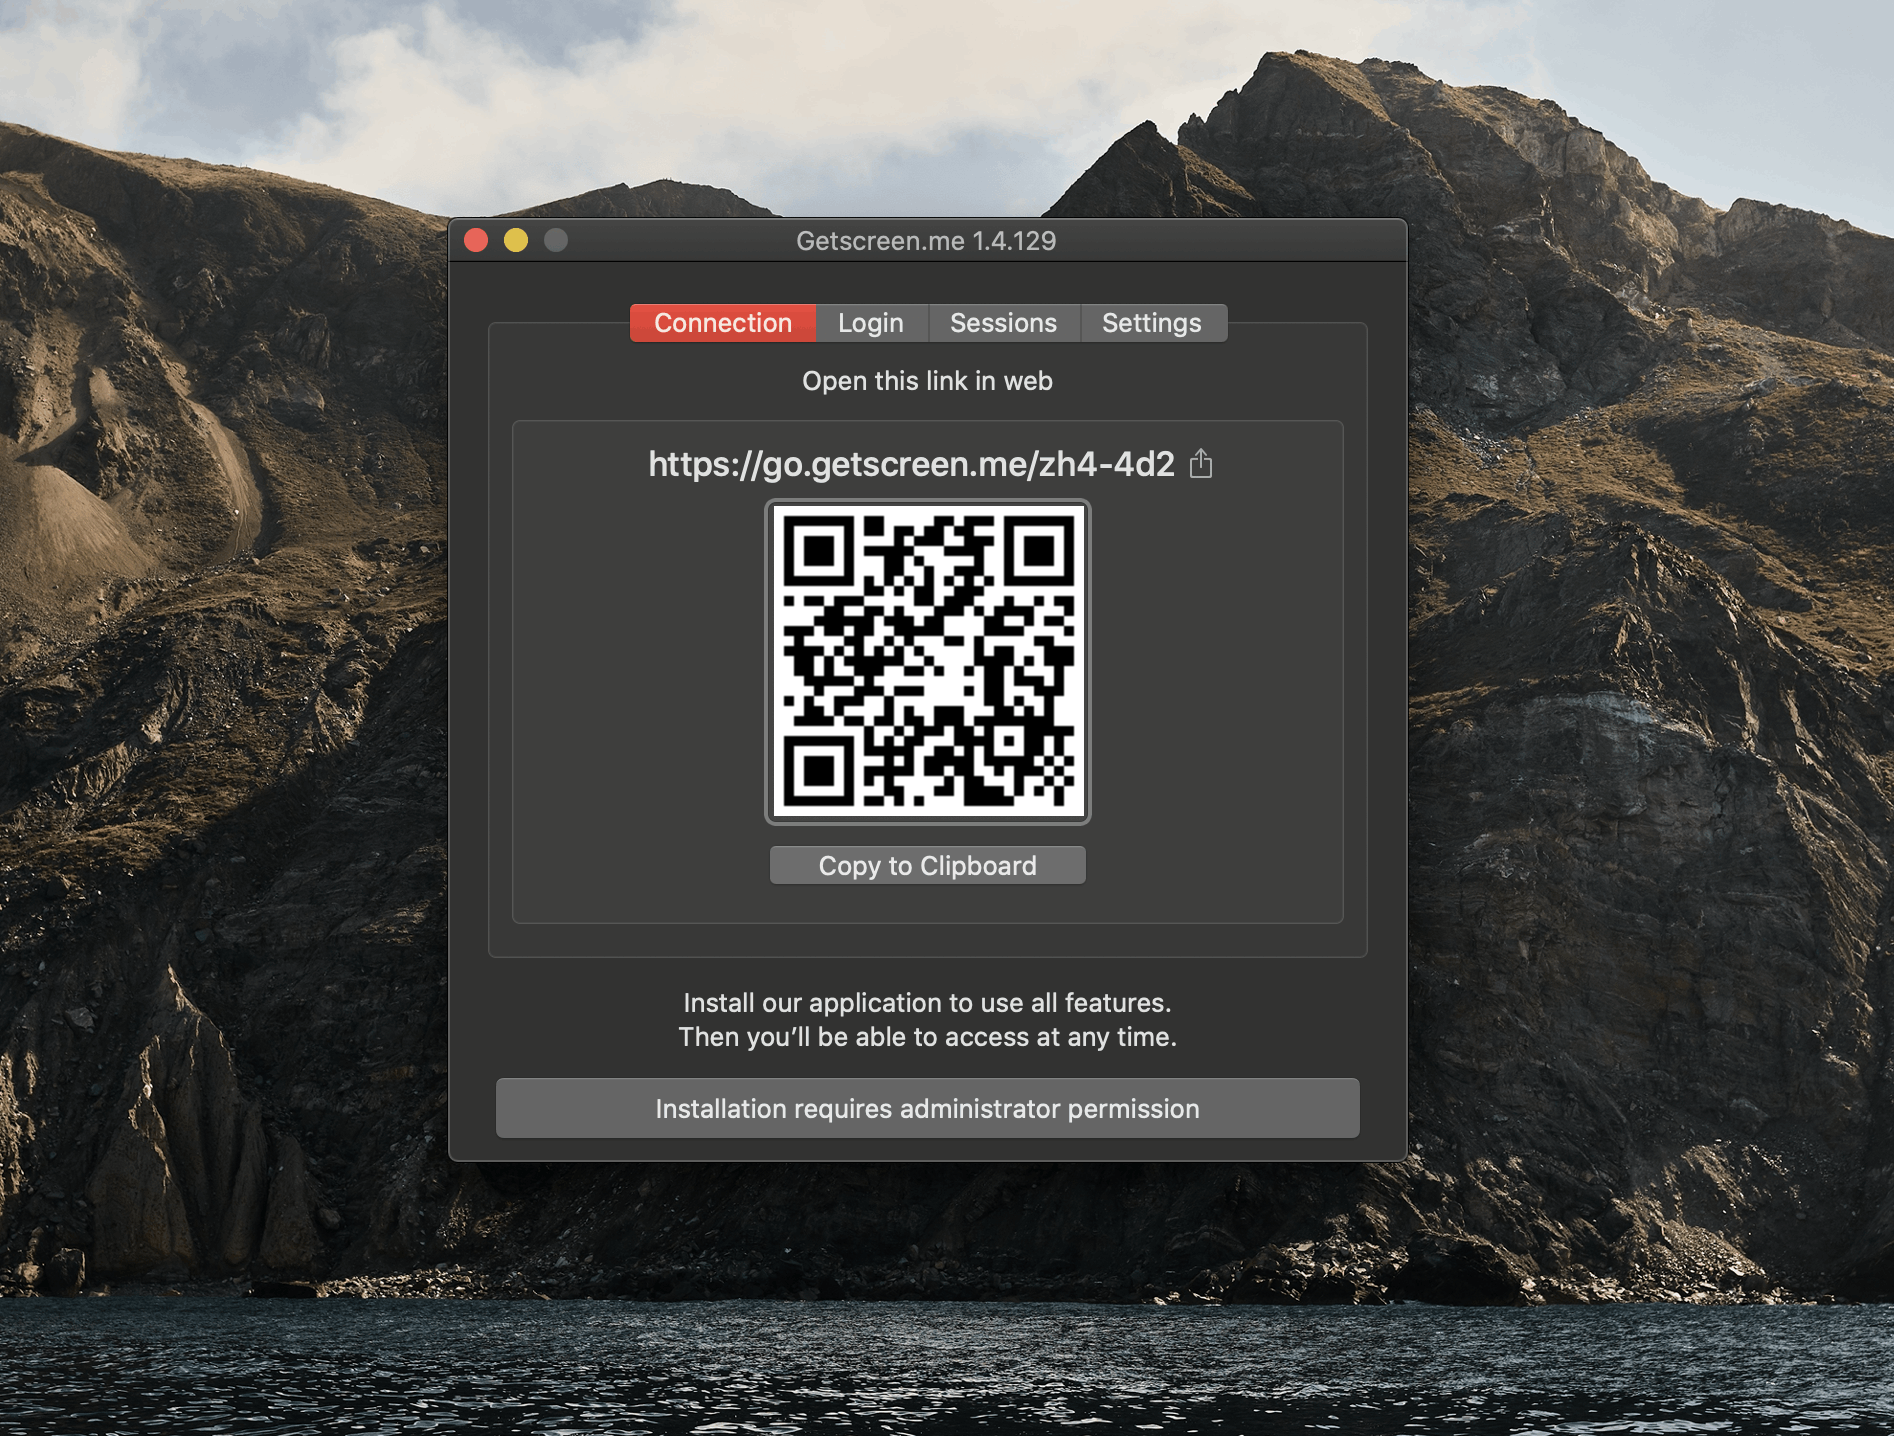 Getscreen QR code for remote access